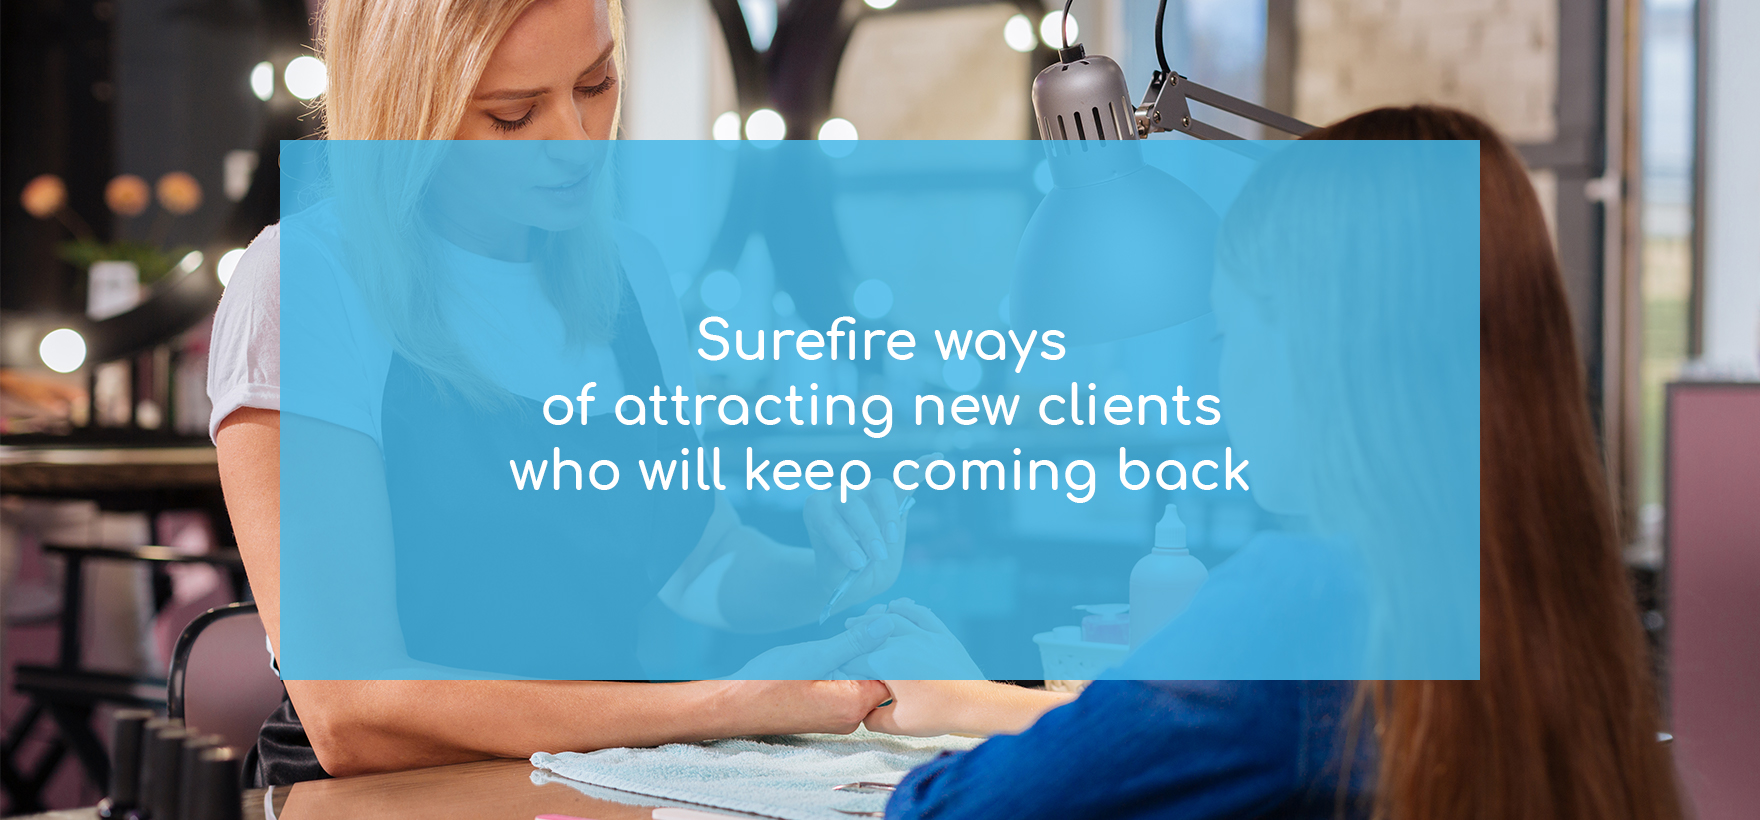 6 surefire ways of attracting new clients who will keep coming back